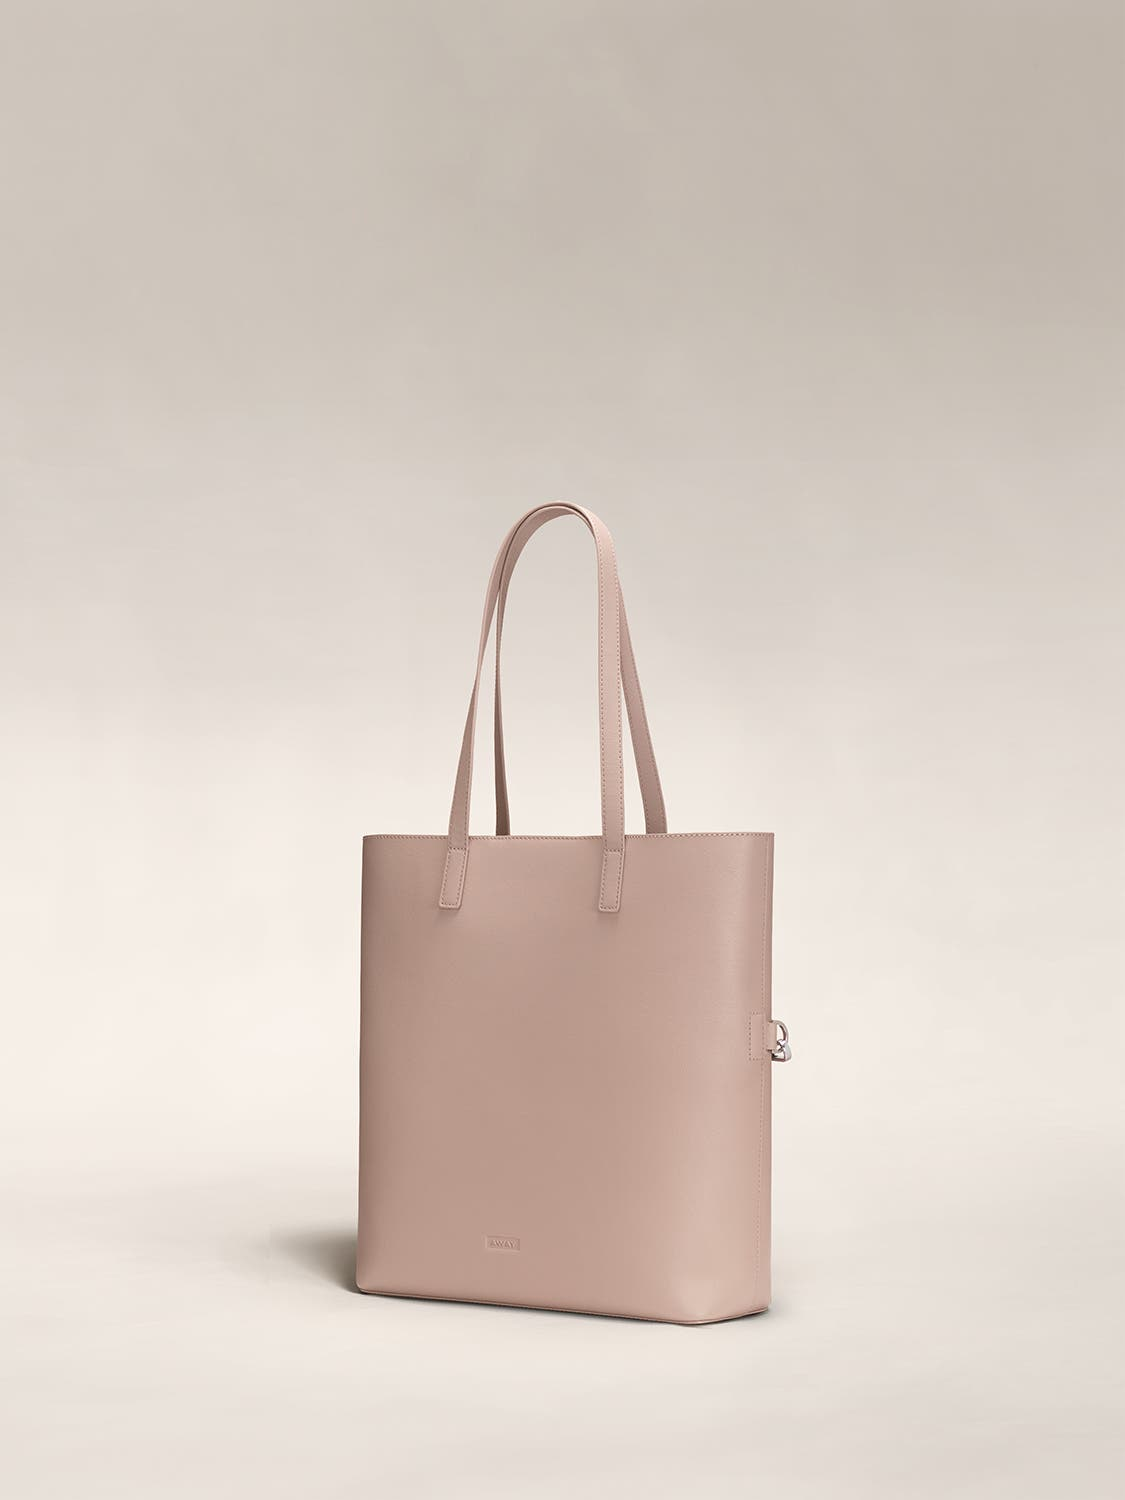 Angled view of a rose pink leather tote travel bag in leather.